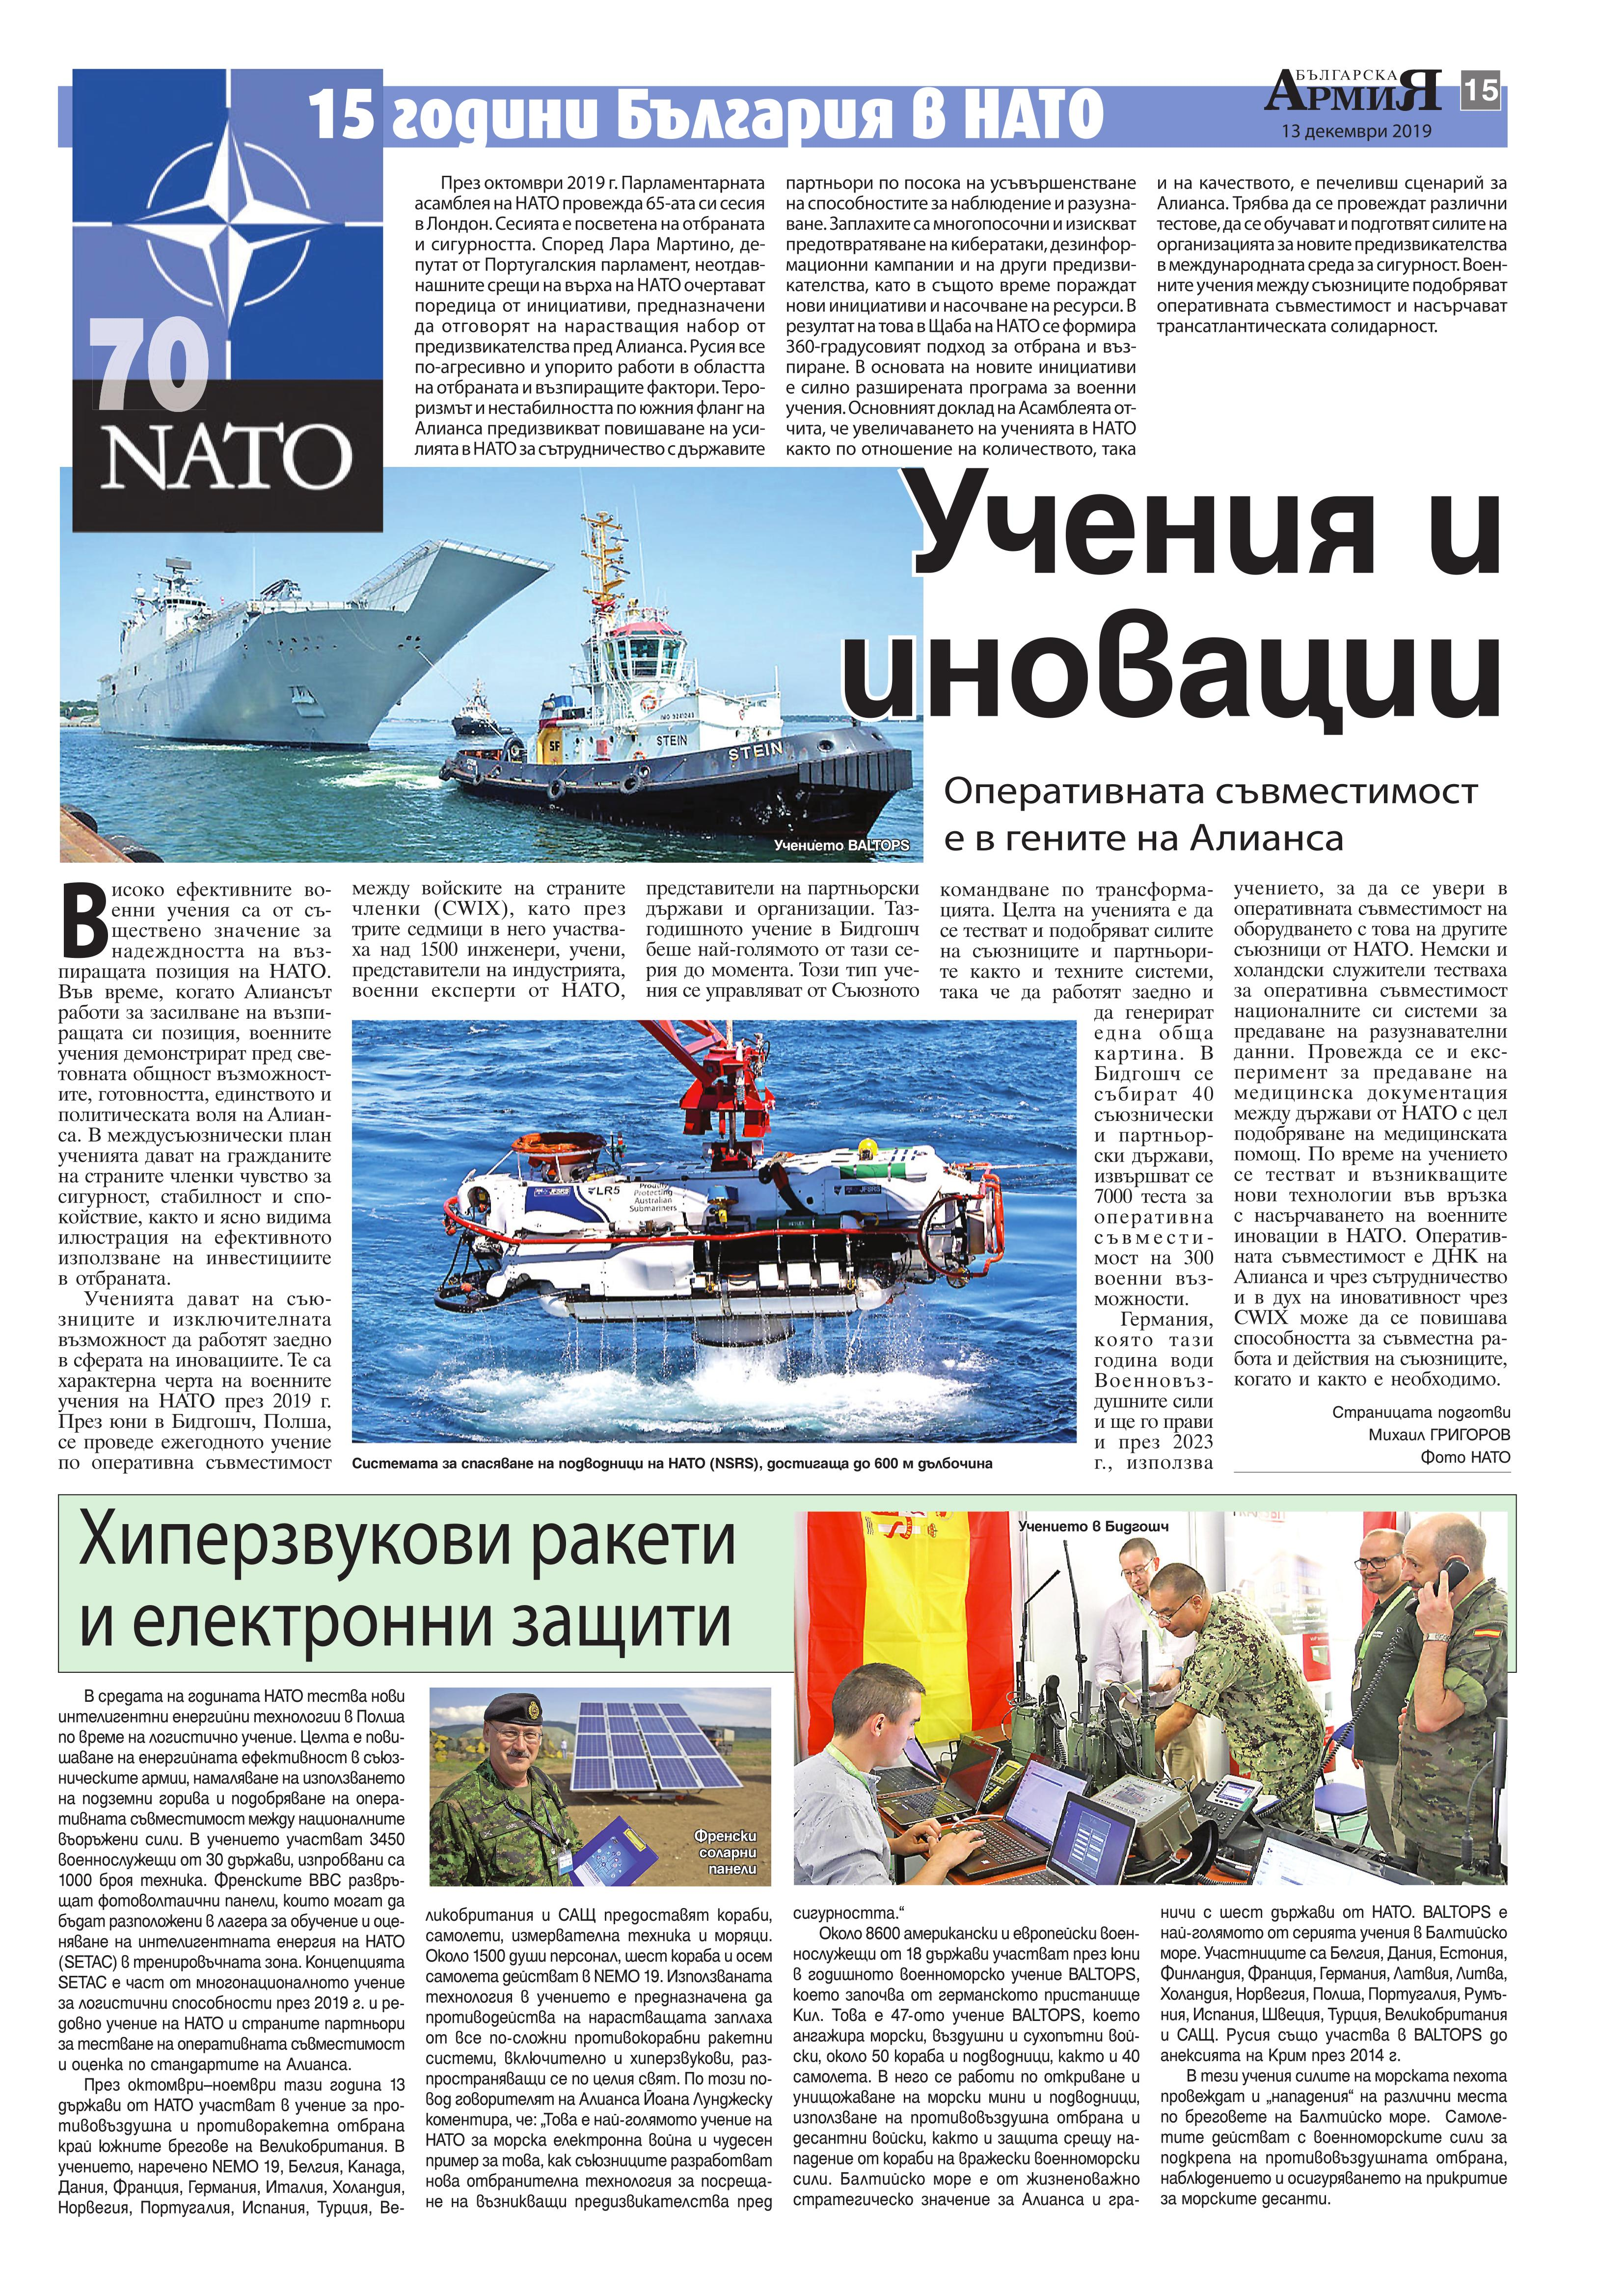 https://www.armymedia.bg/wp-content/uploads/2015/06/15.page1_-119.jpg